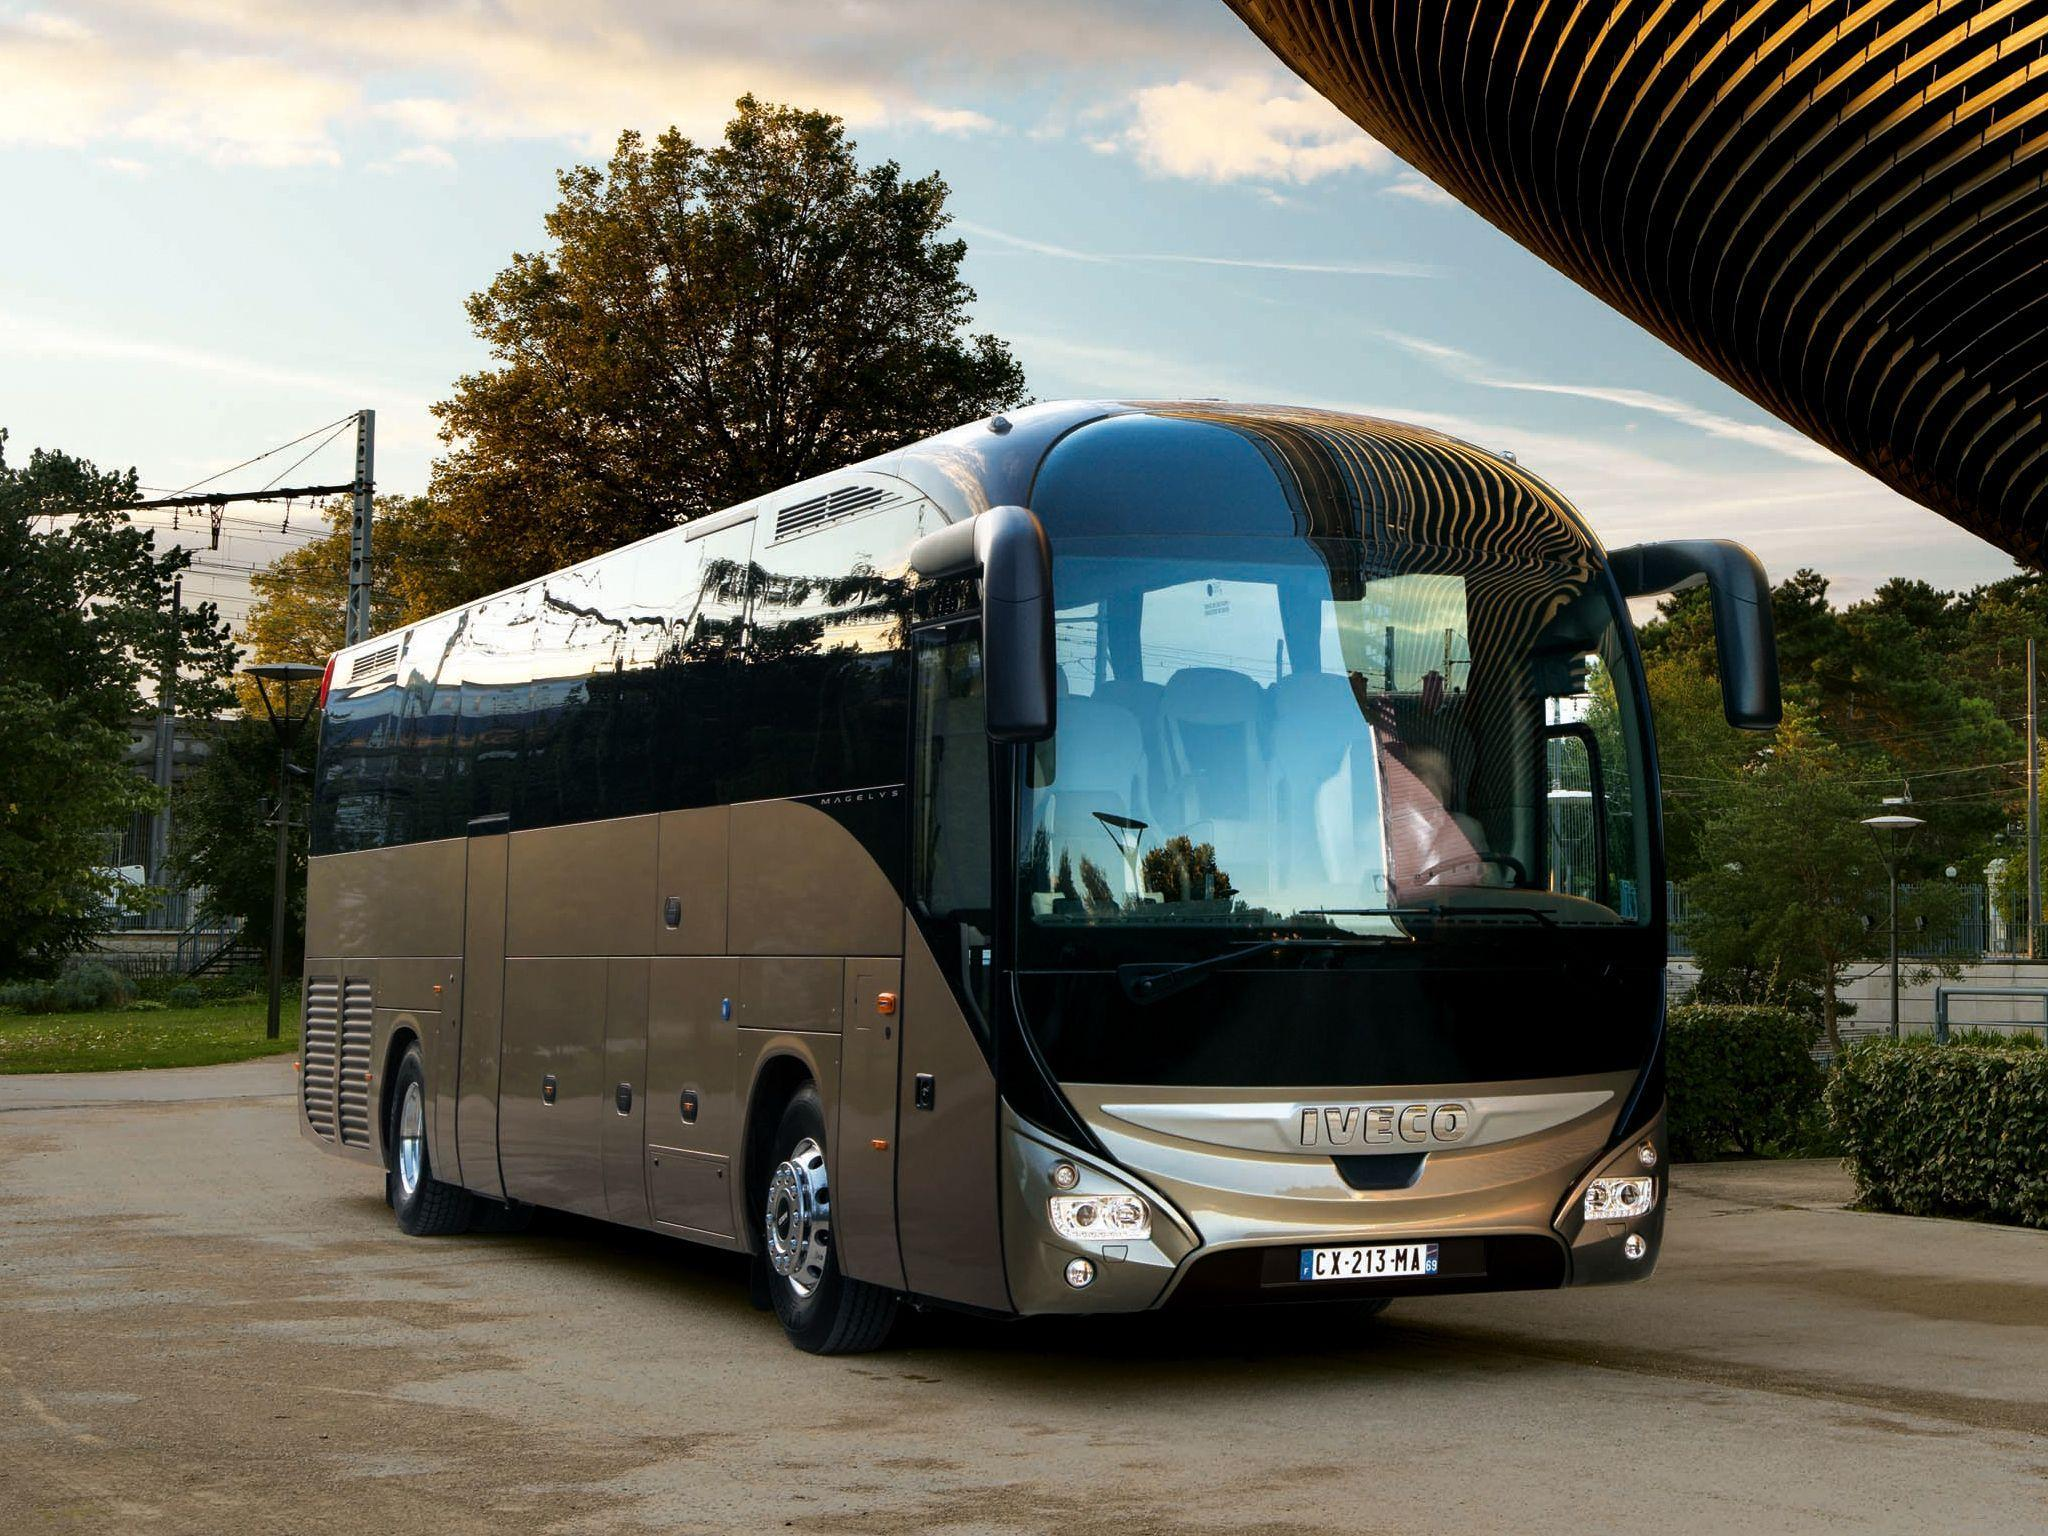 2013 Iveco Magelys Pro Bus transport semi tractor g wallpapers